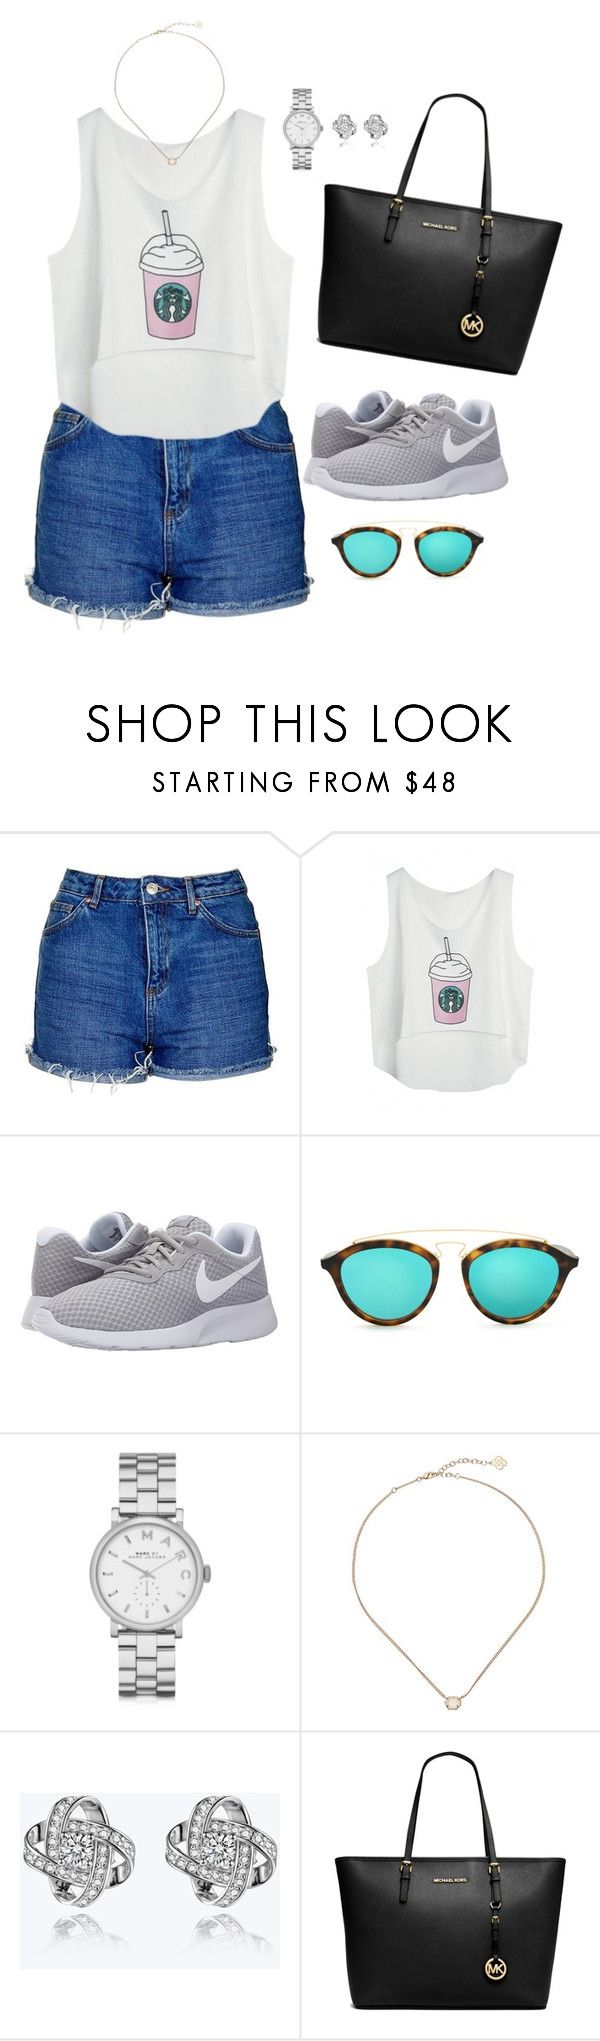 """""""Outfit 24"""" by caa123 ❤ liked on Polyvore featuring Topshop, NIKE, Ray-Ban, Marc by Marc Jacobs, Kendra Scott and Michael Kors"""